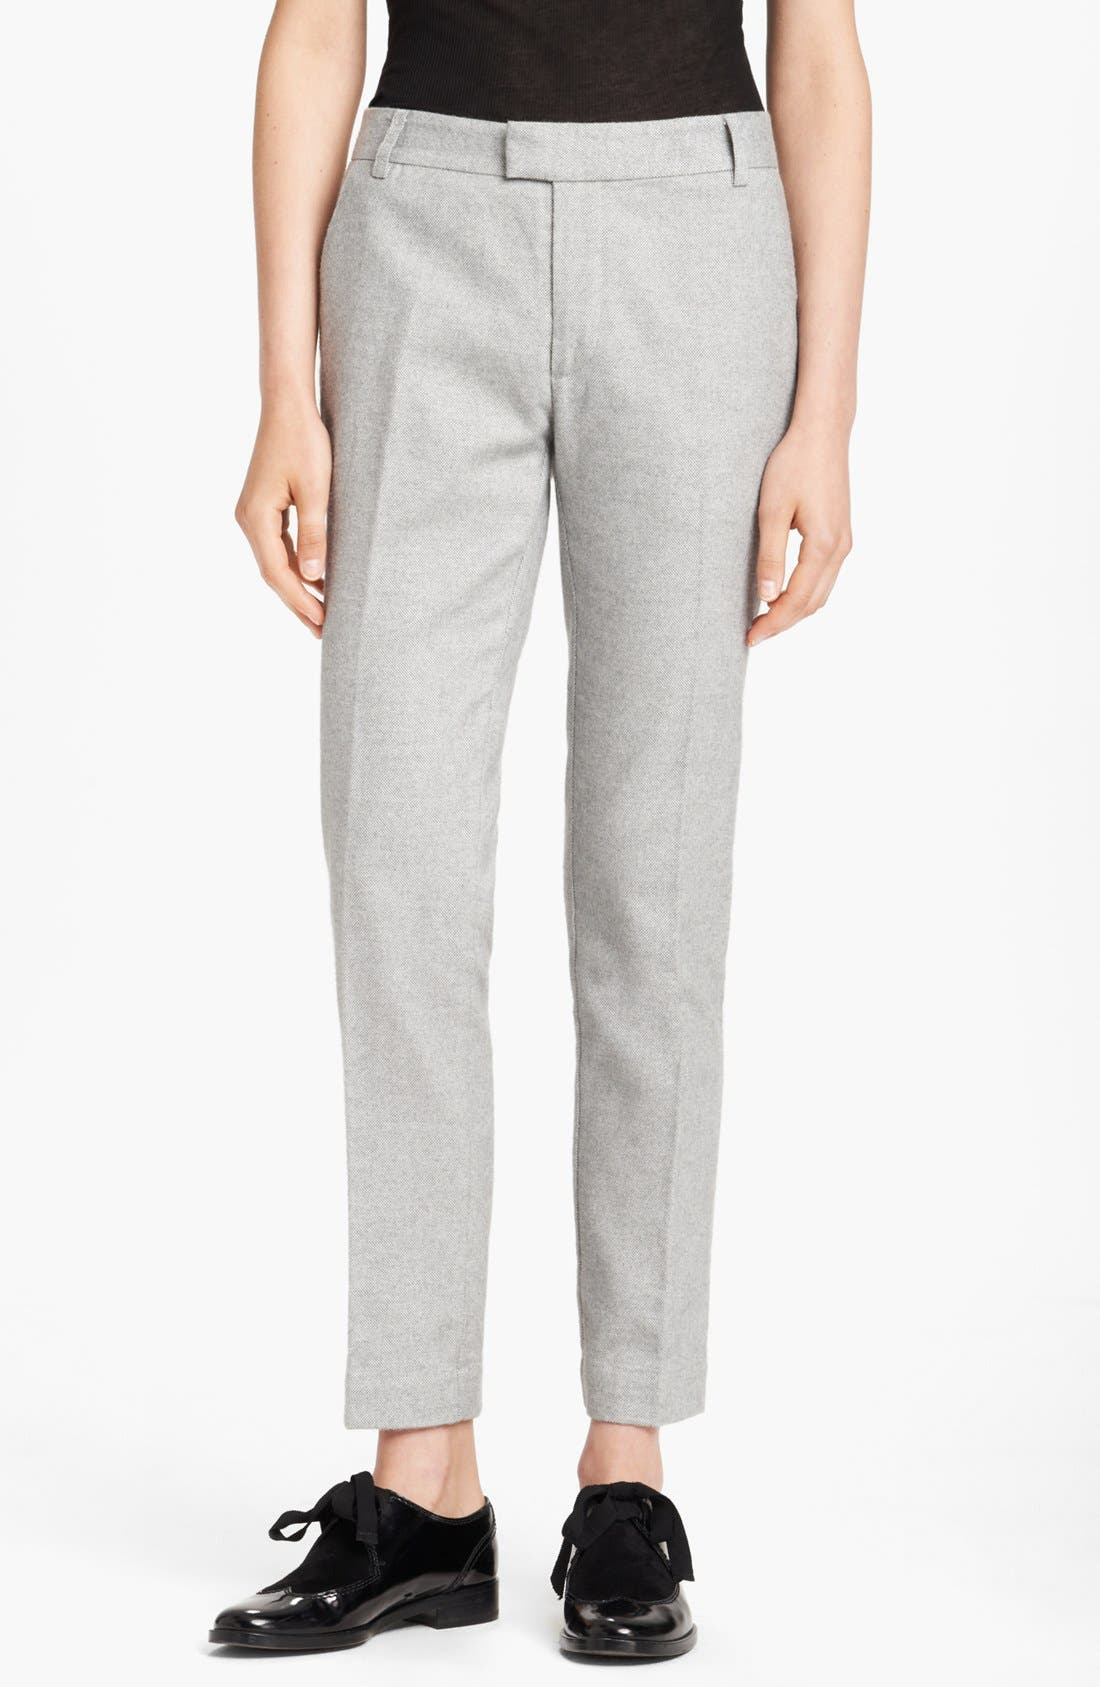 Main Image - Band of Outsiders Slim Tweed Pants